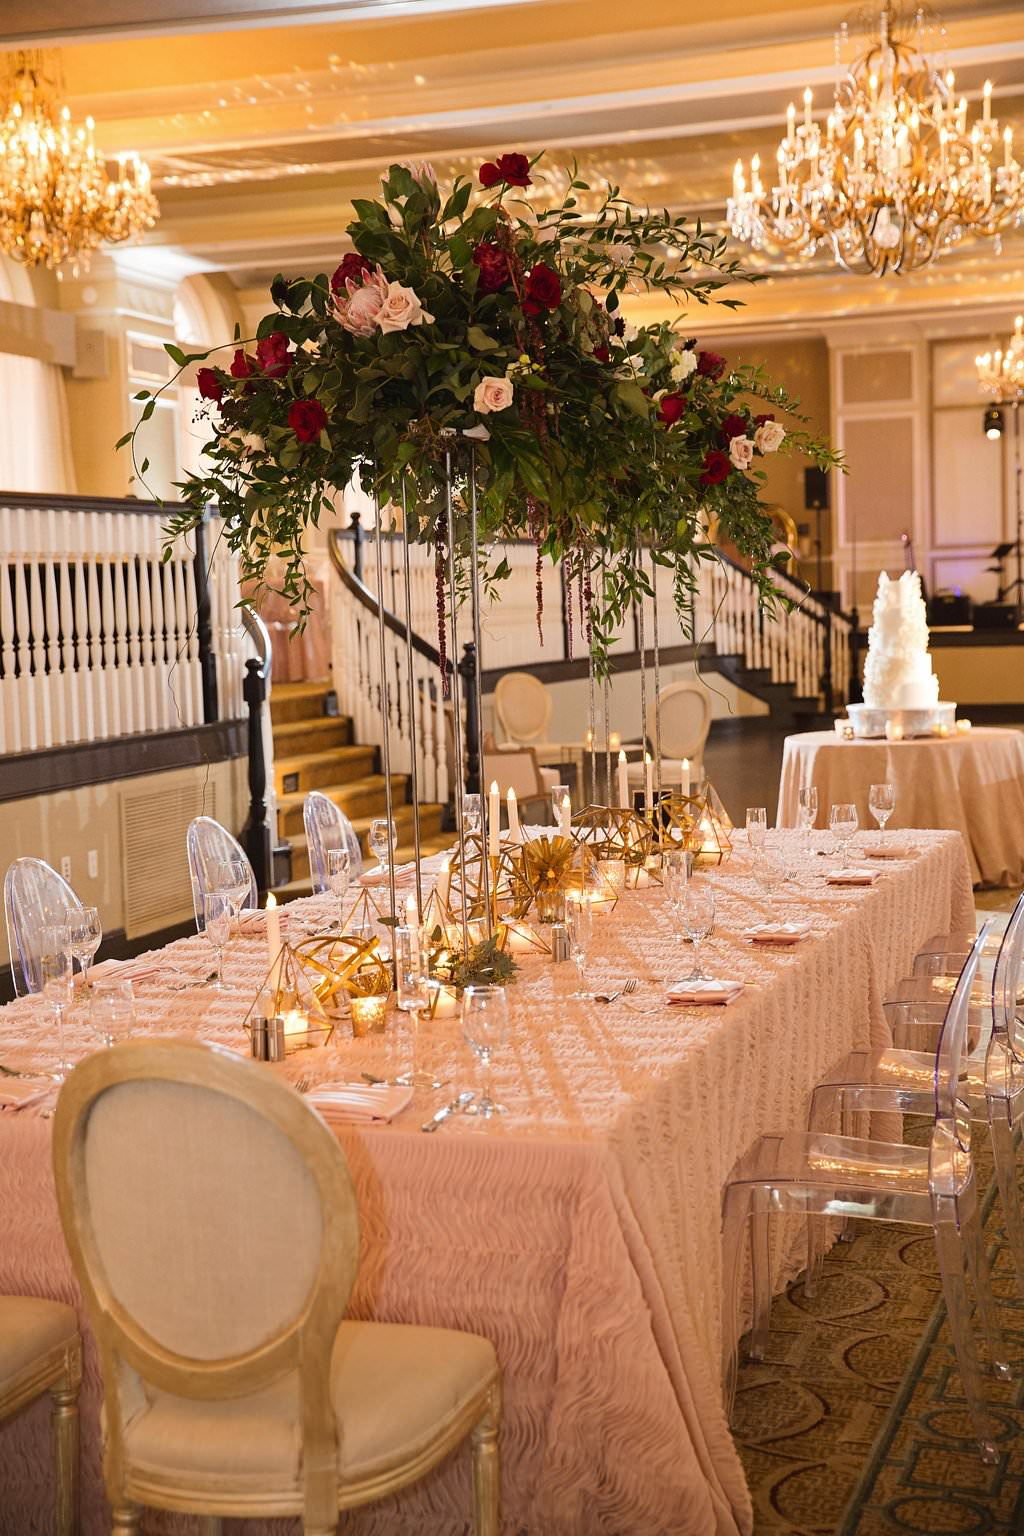 Modern Winter Pink and Burgundy Hotel Ballroom Wedding Reception with Tall Red and Blush Floral with Greenery Centerpiece, Clear Plastic Oval Back Chairs, Textured Blush Linen from Over the Top, and Gold Candles and Accents | Historic Tampa Bay Waterfront Wedding Venue The Don CeSar | St Petersburg Wedding Planner Parties A La Carte |